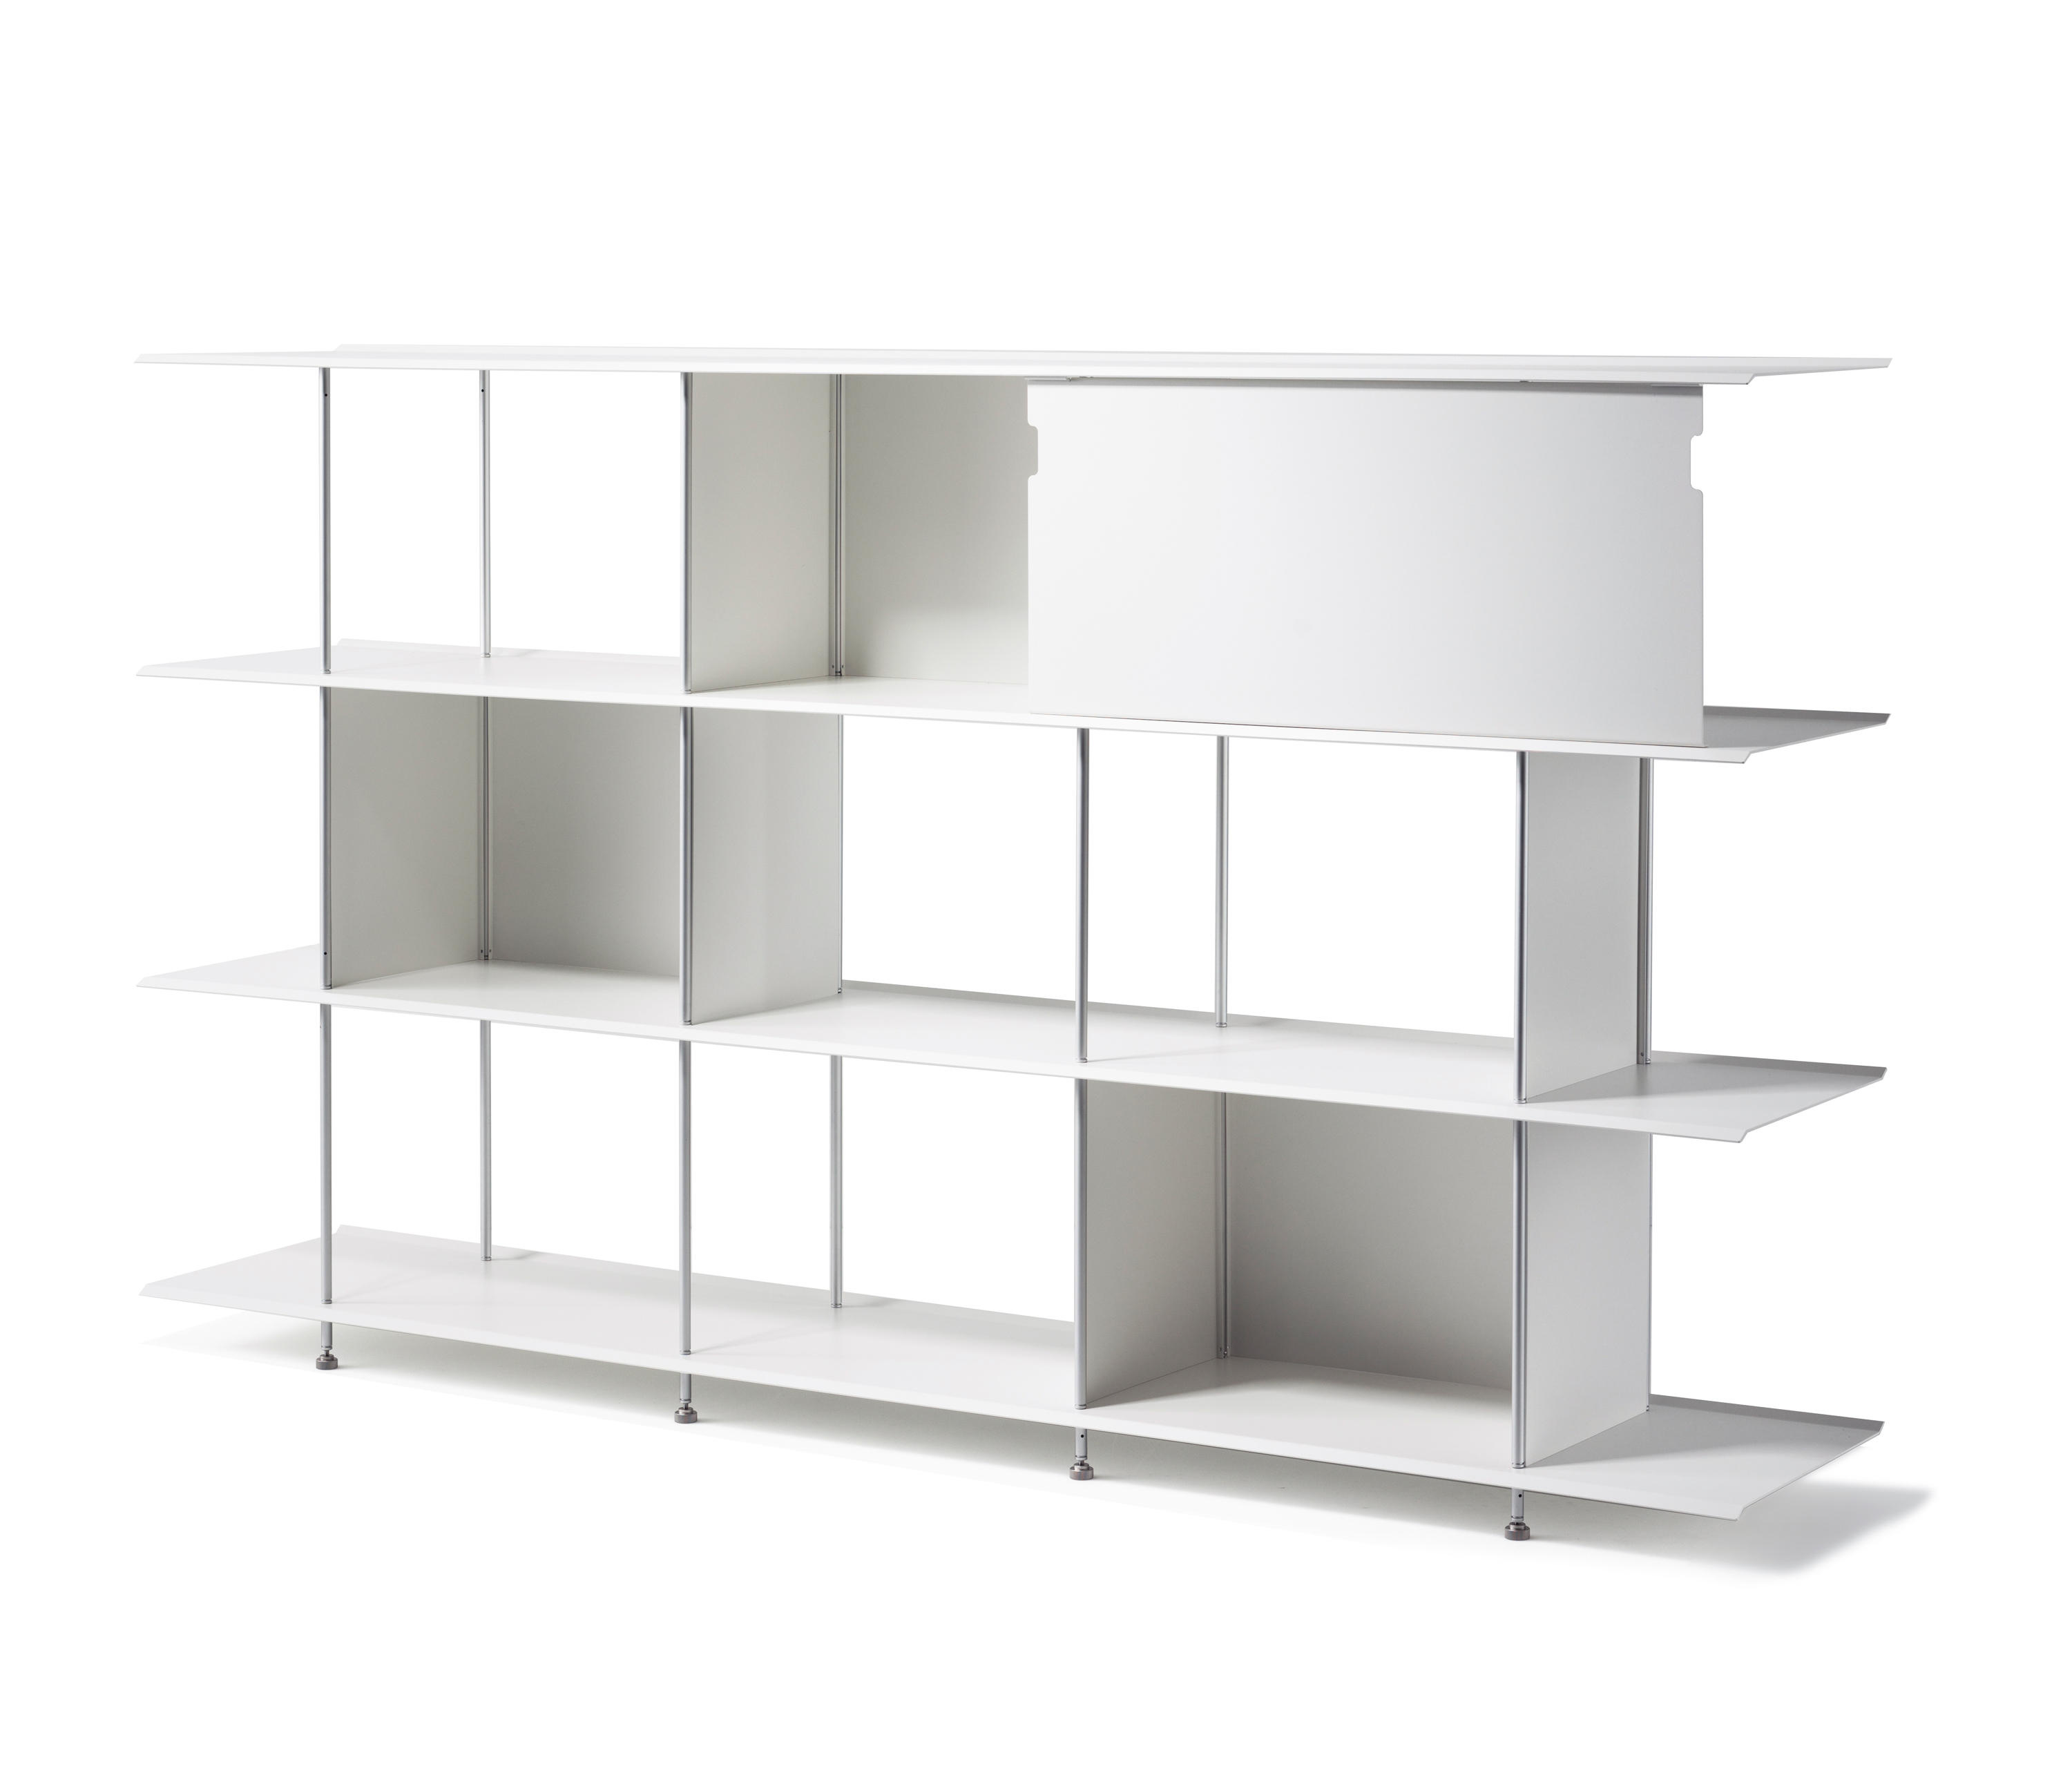 office shelving systems. Zeta Aluminium By OXIT Design | Office Shelving Systems